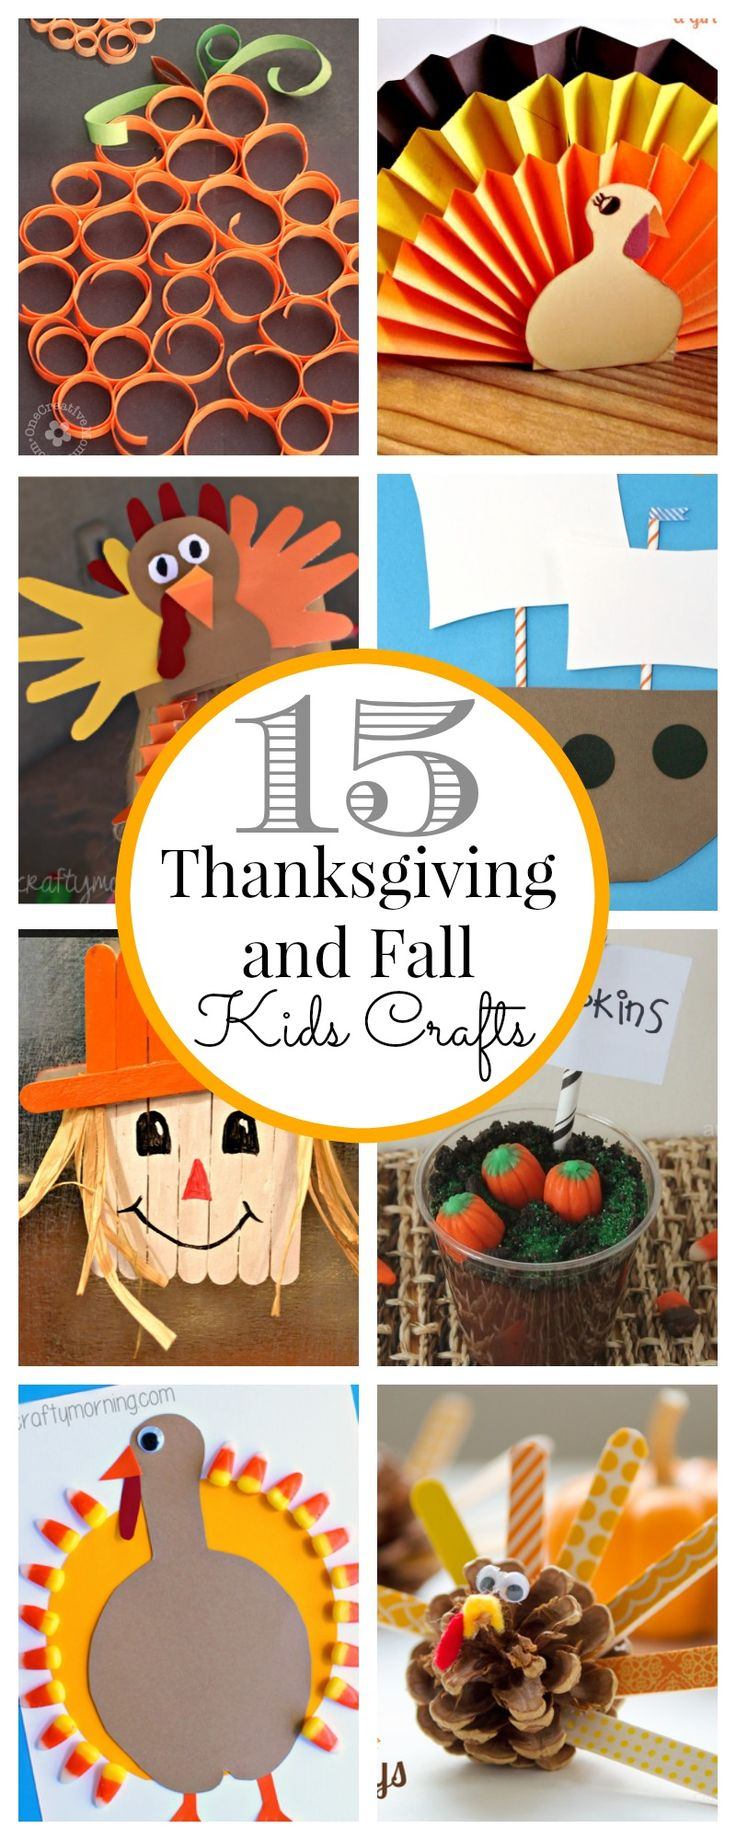 I love Thanksgiving and I feel like it gets a little over looked. I don't normally do a lot of decor for Thanksgiving. But I do want to do a few kids crafts. I know they will love it. Here are just a few of the crafts I have found that I love.